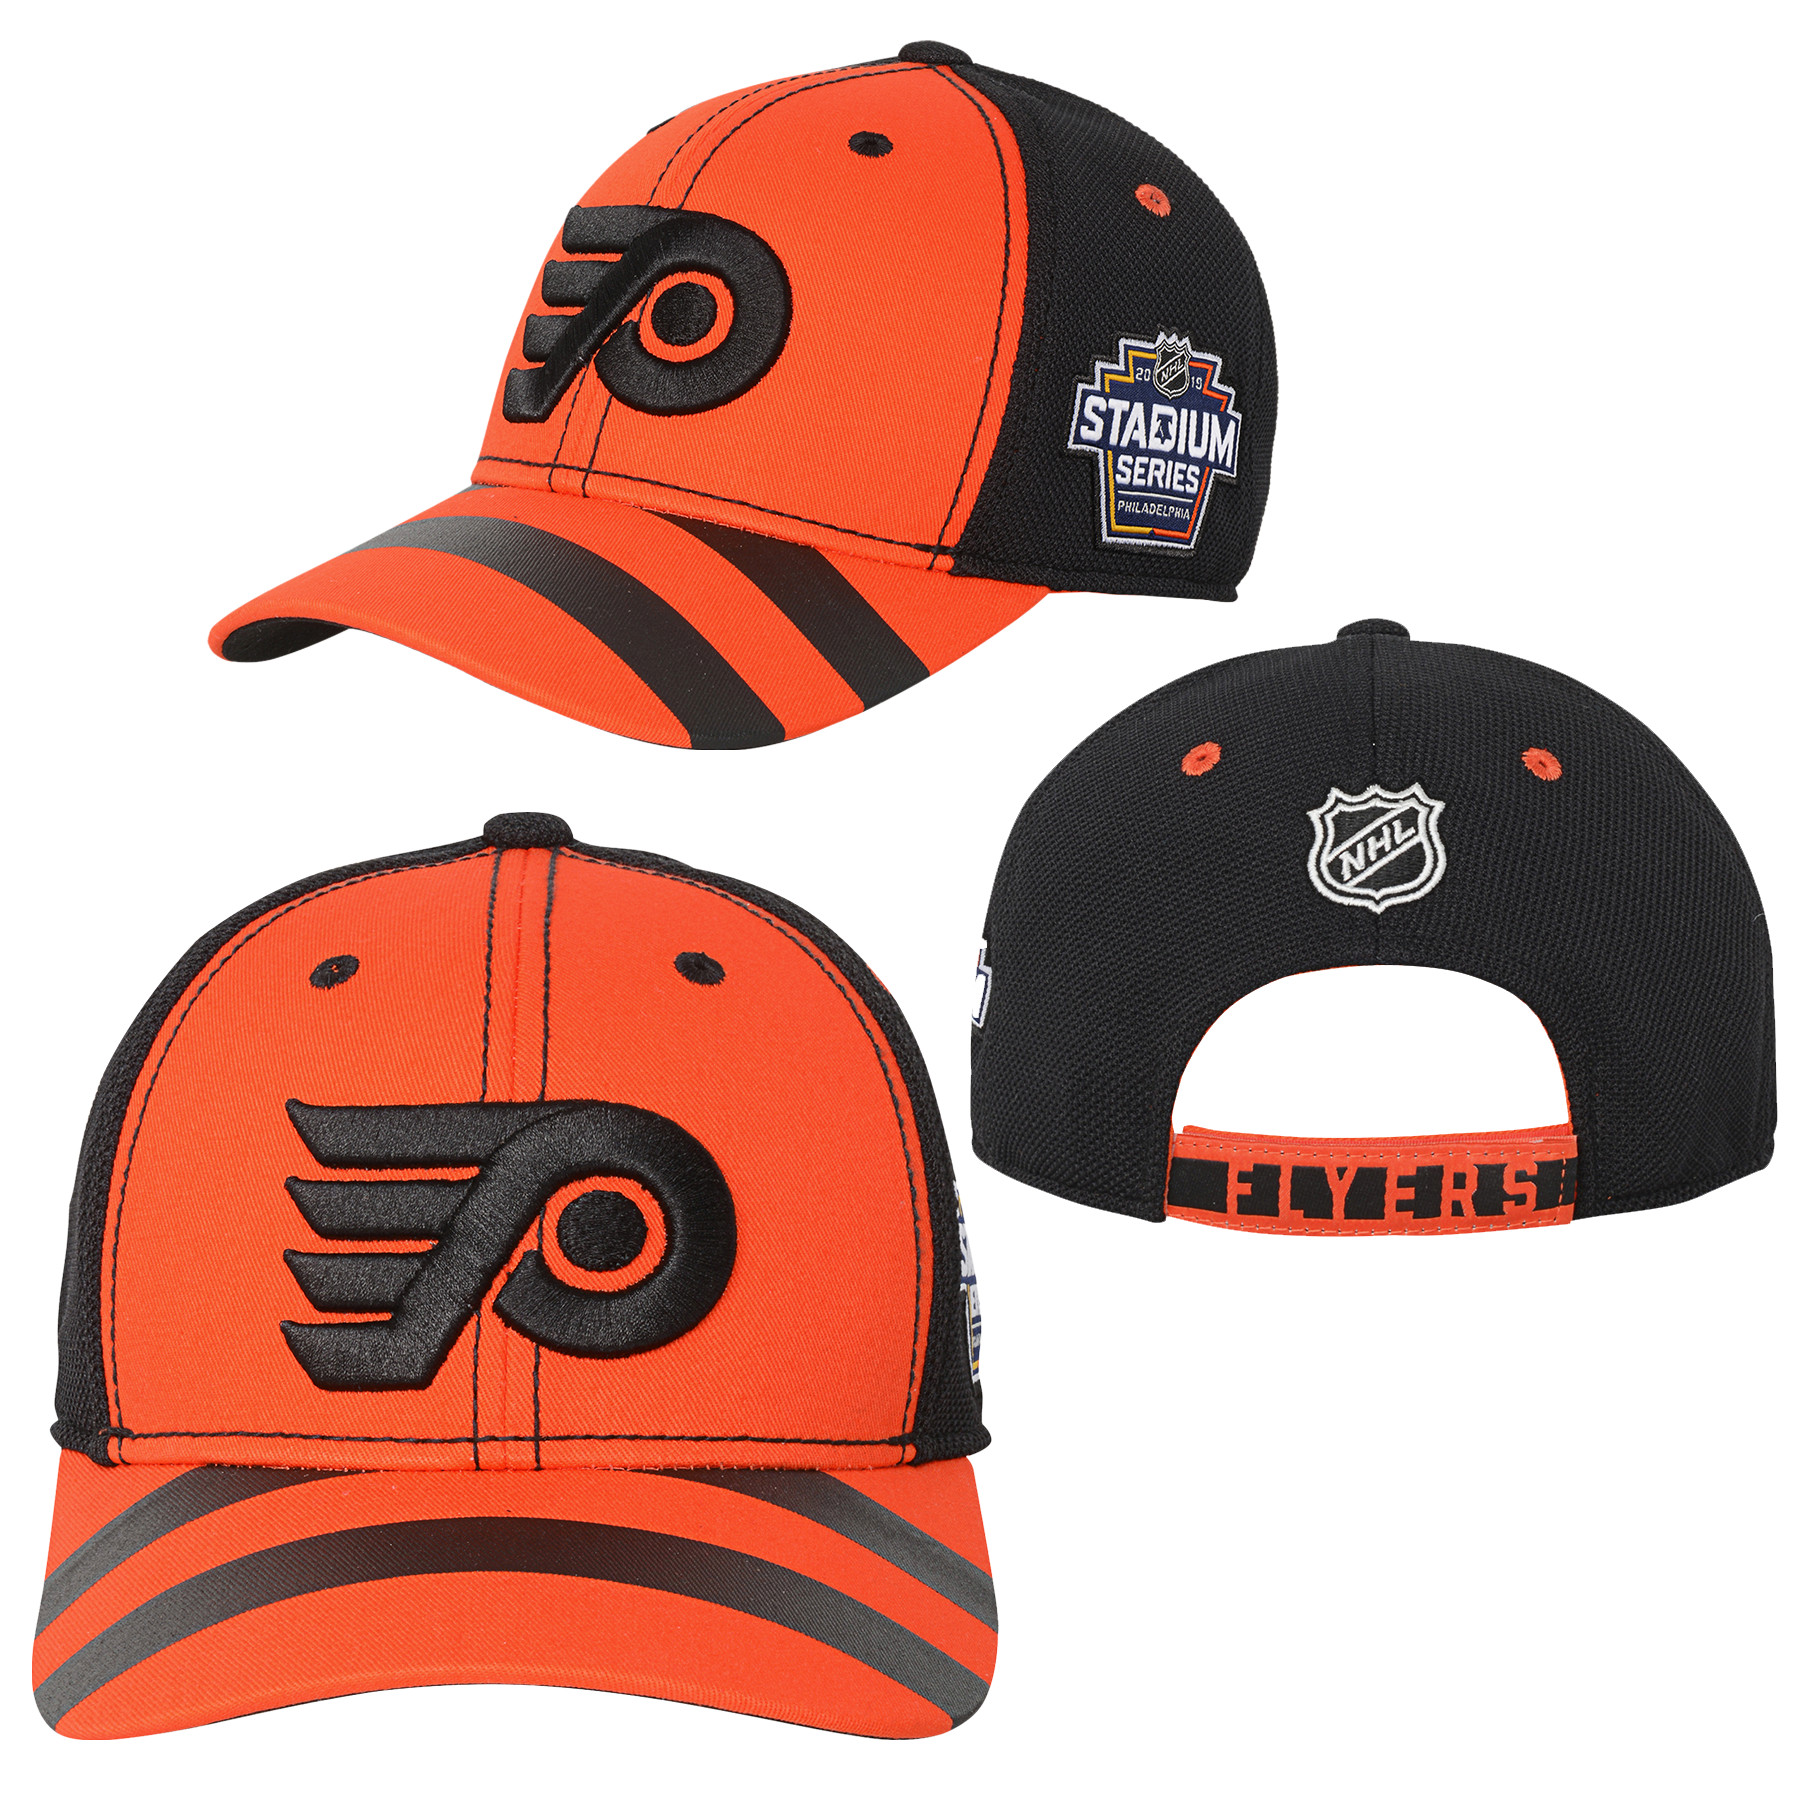 Philadelphia Flyers Youth 2019 Stadium Series Adjustable Cap by Outerstuff 937f157c2